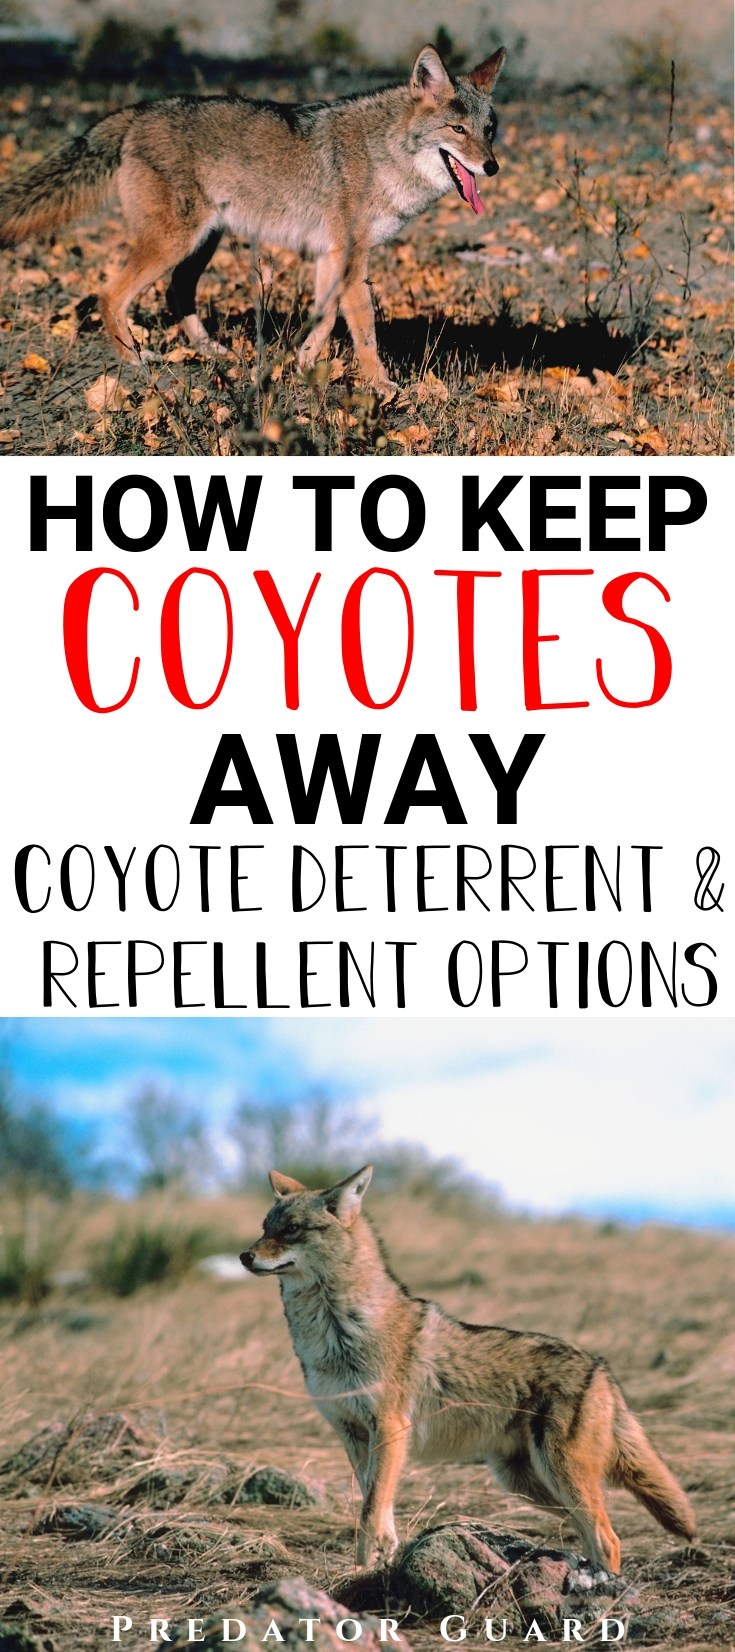 How-To-Keep-Coyotes-Away-1